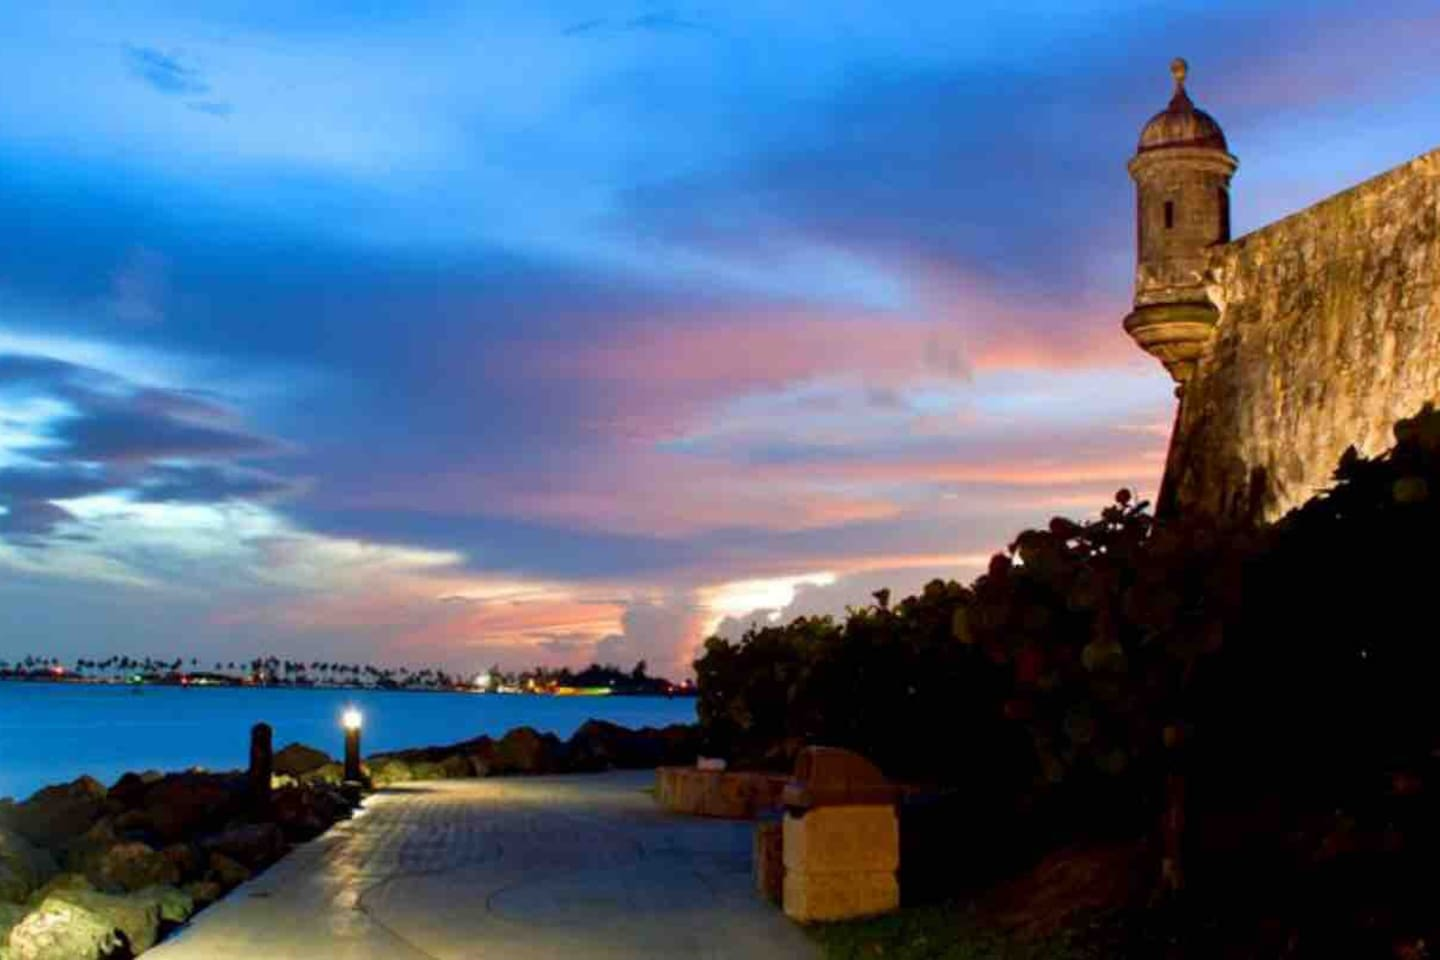 This is our capital, San Juan, our house is at 25 minutes ride away.  Walk by The Puerta de San Juan and San Felipe Del  Morro Fortress in Old San Juan, our capital..  Enjoy our beautiful sunsets...25 minutes ride from home.